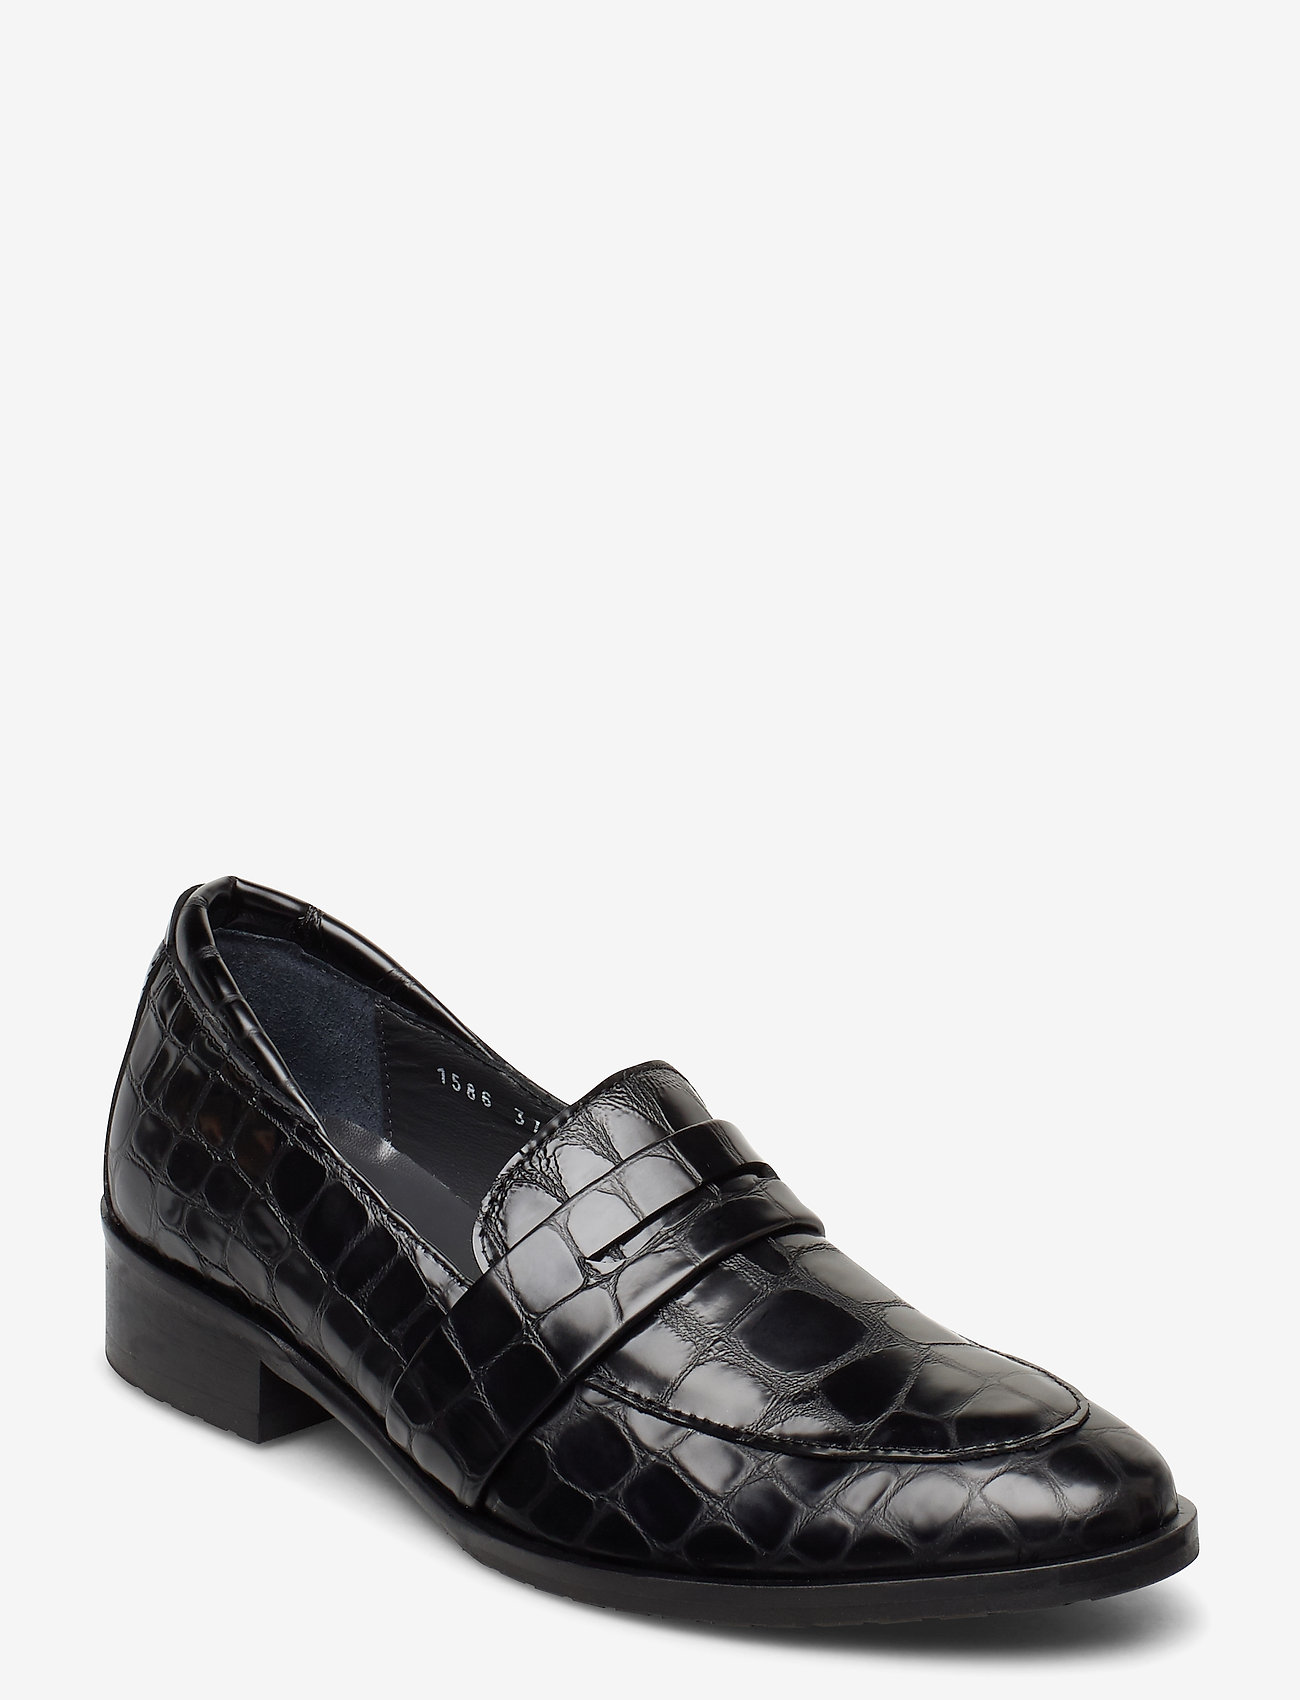 ANGULUS - Loafer - flat - loafers - 1674 black croco - 0